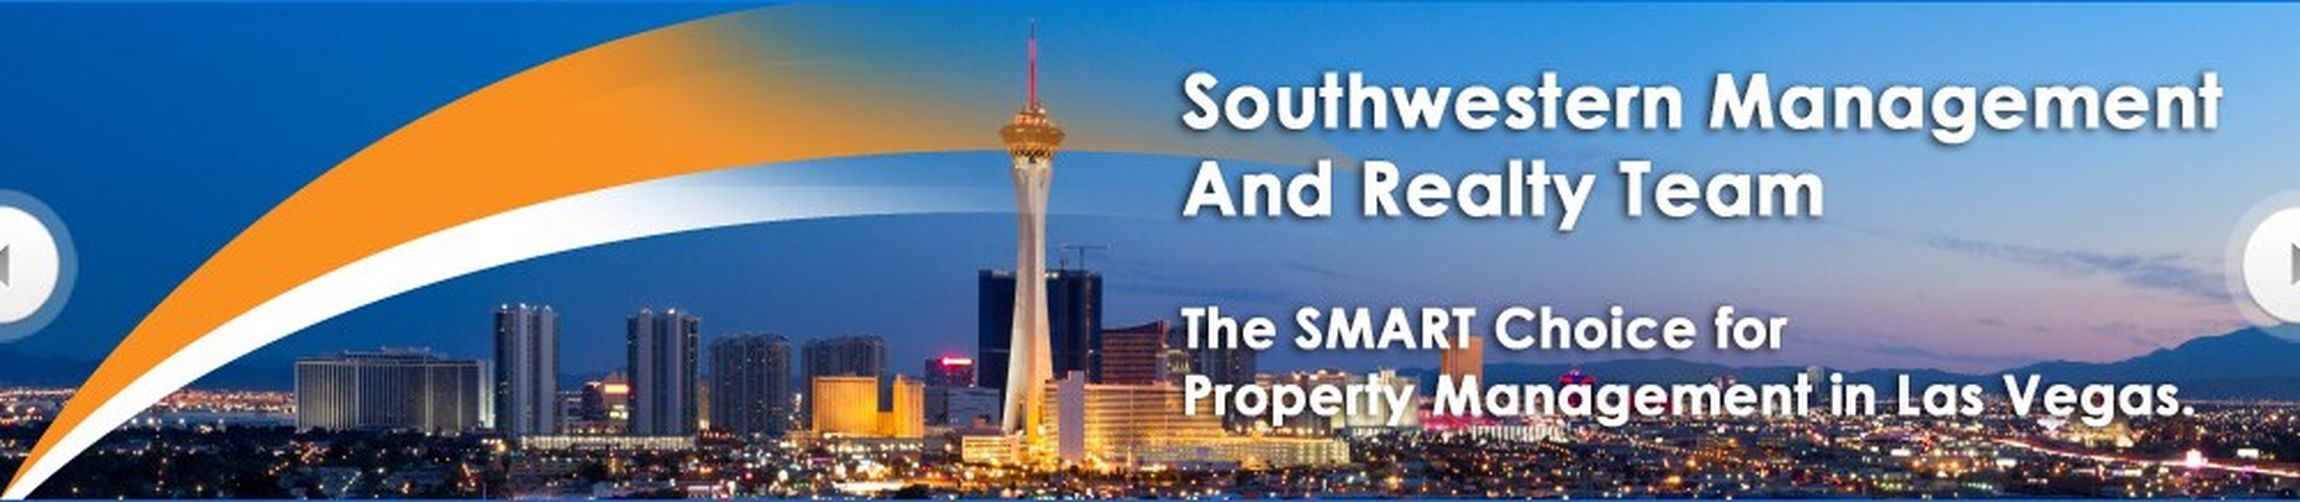 Southwestern Management And Realty Team 150 N. Durango Drive #280 Las Vegas, Nevada 89145 (702) 919-7980 http://www.ManageVegas.com Best Property Management Las Vegas Las Vegas Property Management Las Vegas Property Management Companies Property Management Companies In Las Vegas Property Management Companies Las Vegas Property Management Las Vegas Property Management Las Vegas NV First Eyeem Photo